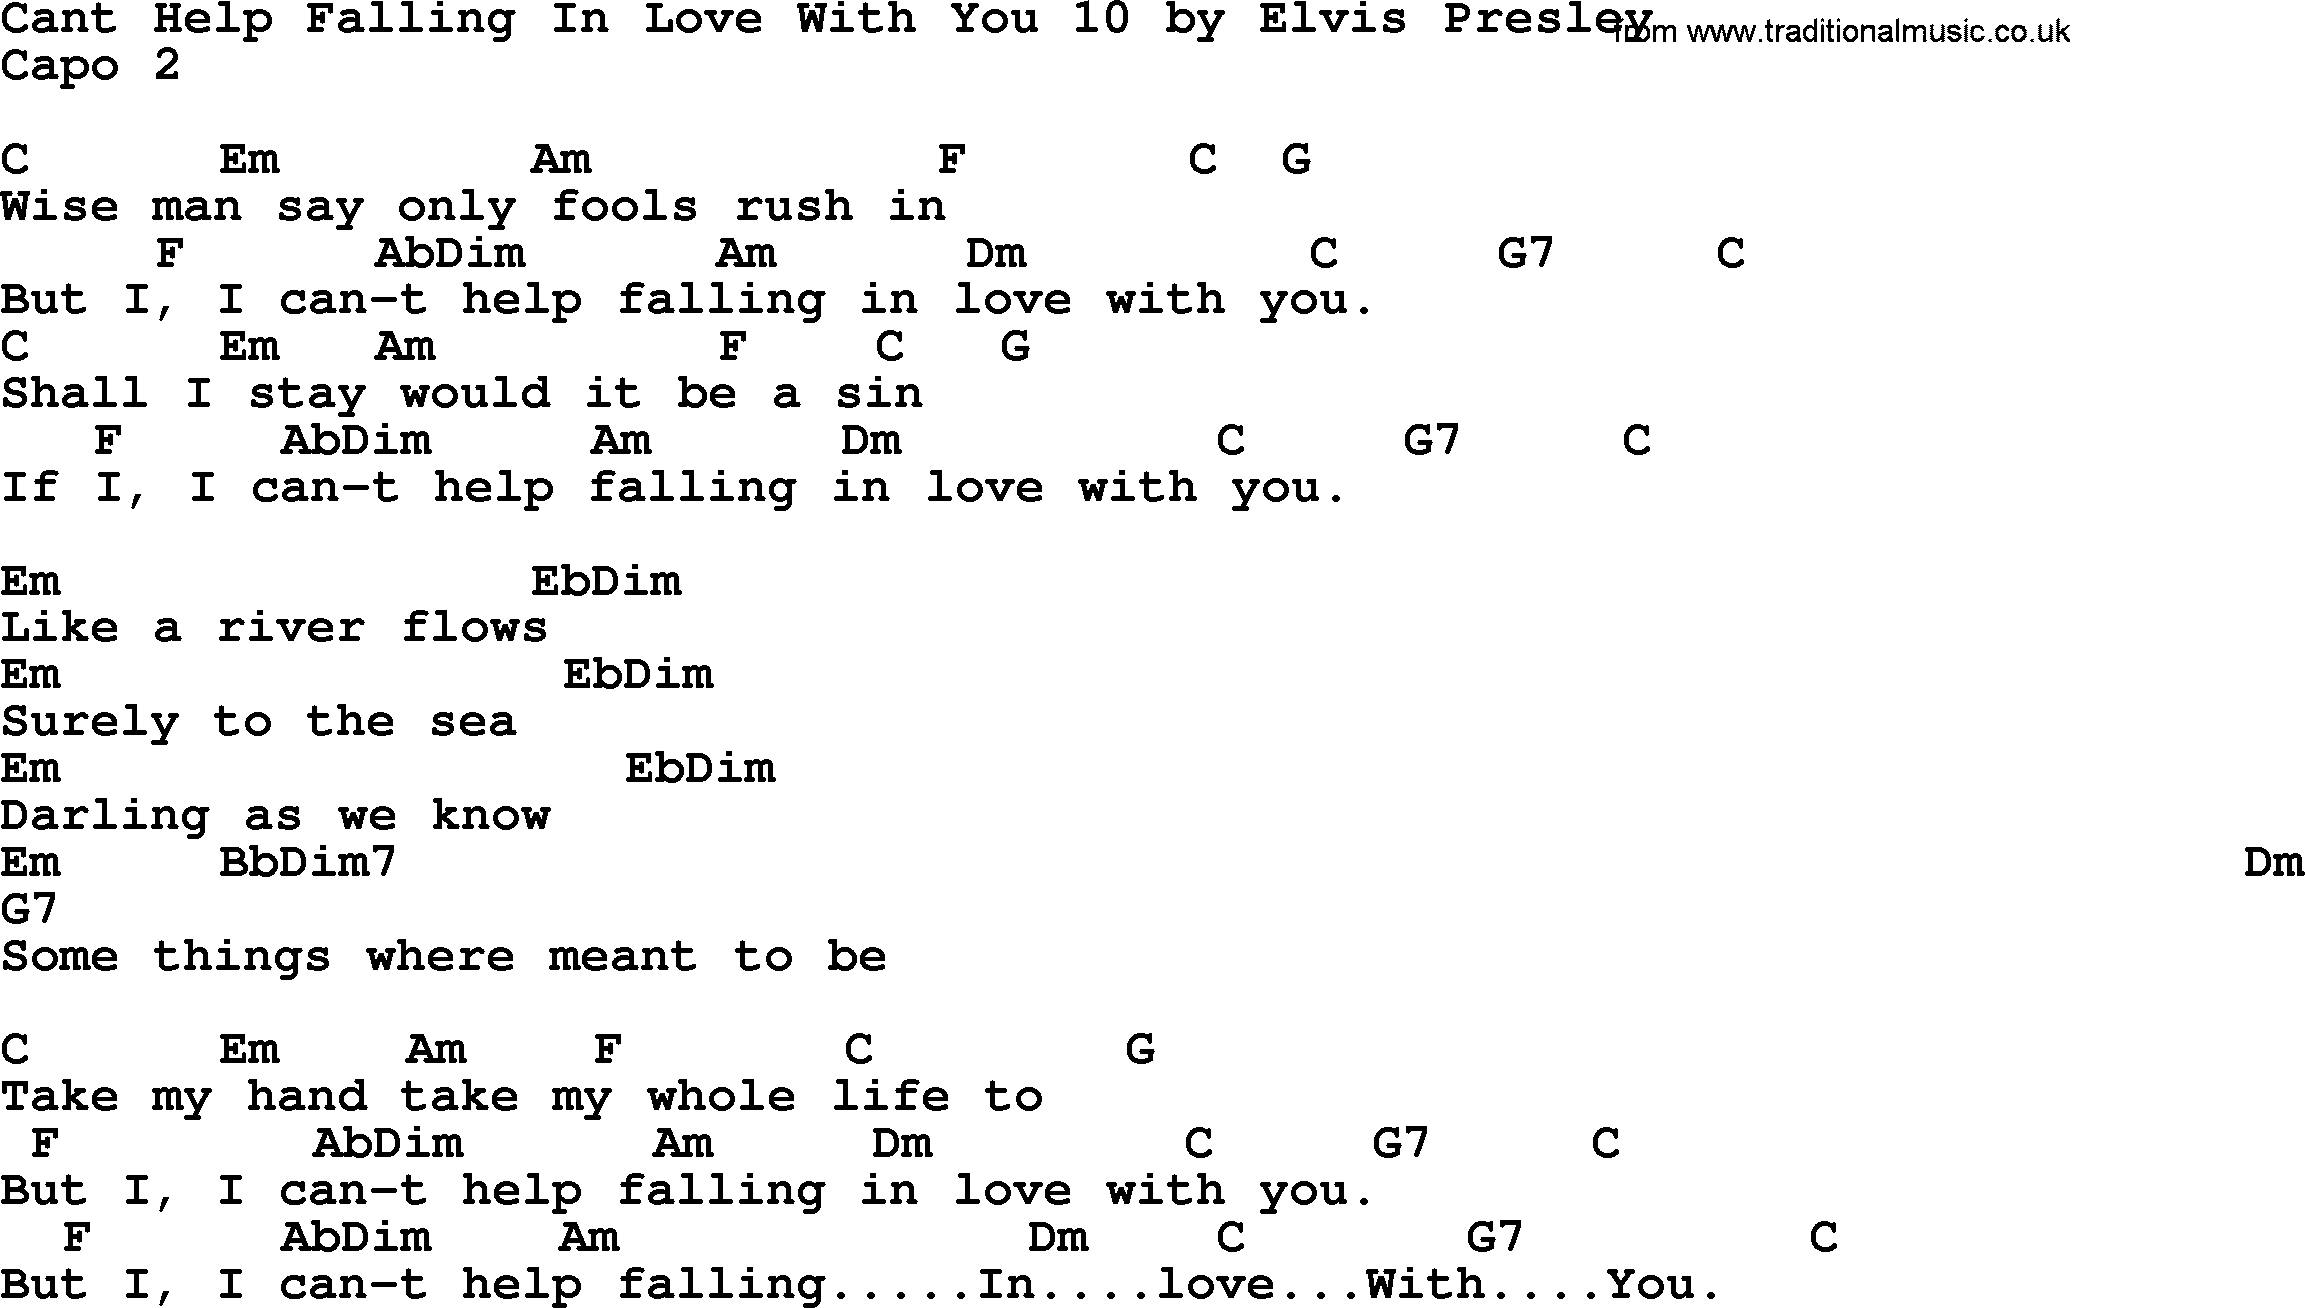 I Can T Help Falling In Love With You Chords Cant Help Falling In Love With You 10 Elvis Presley Lyrics And